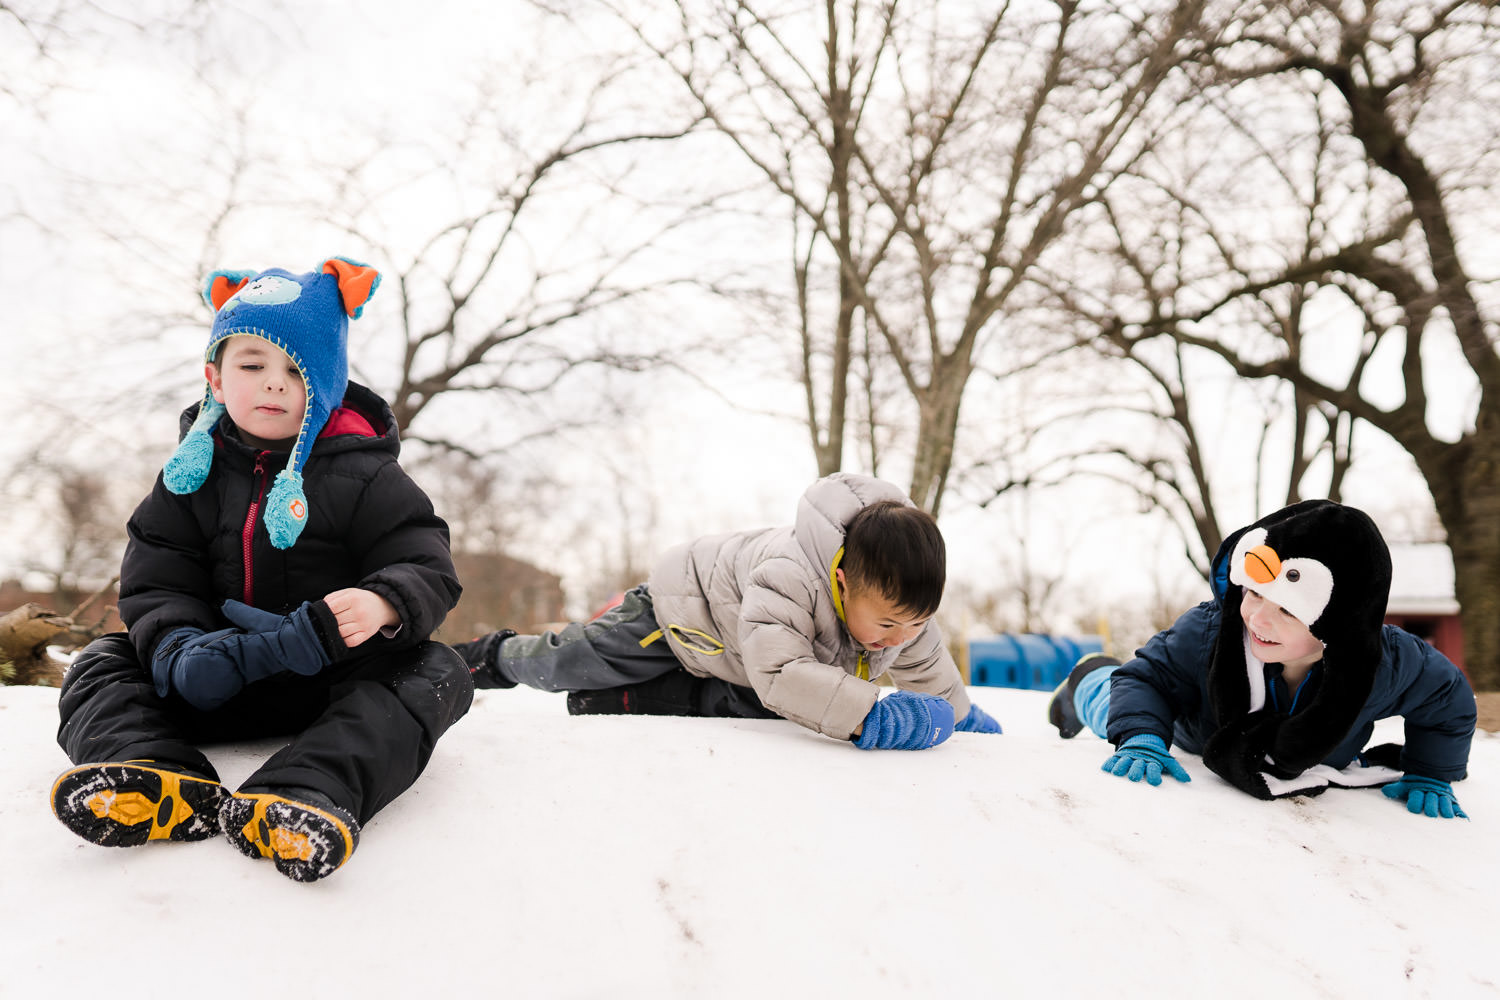 Three little boys play in the snow.